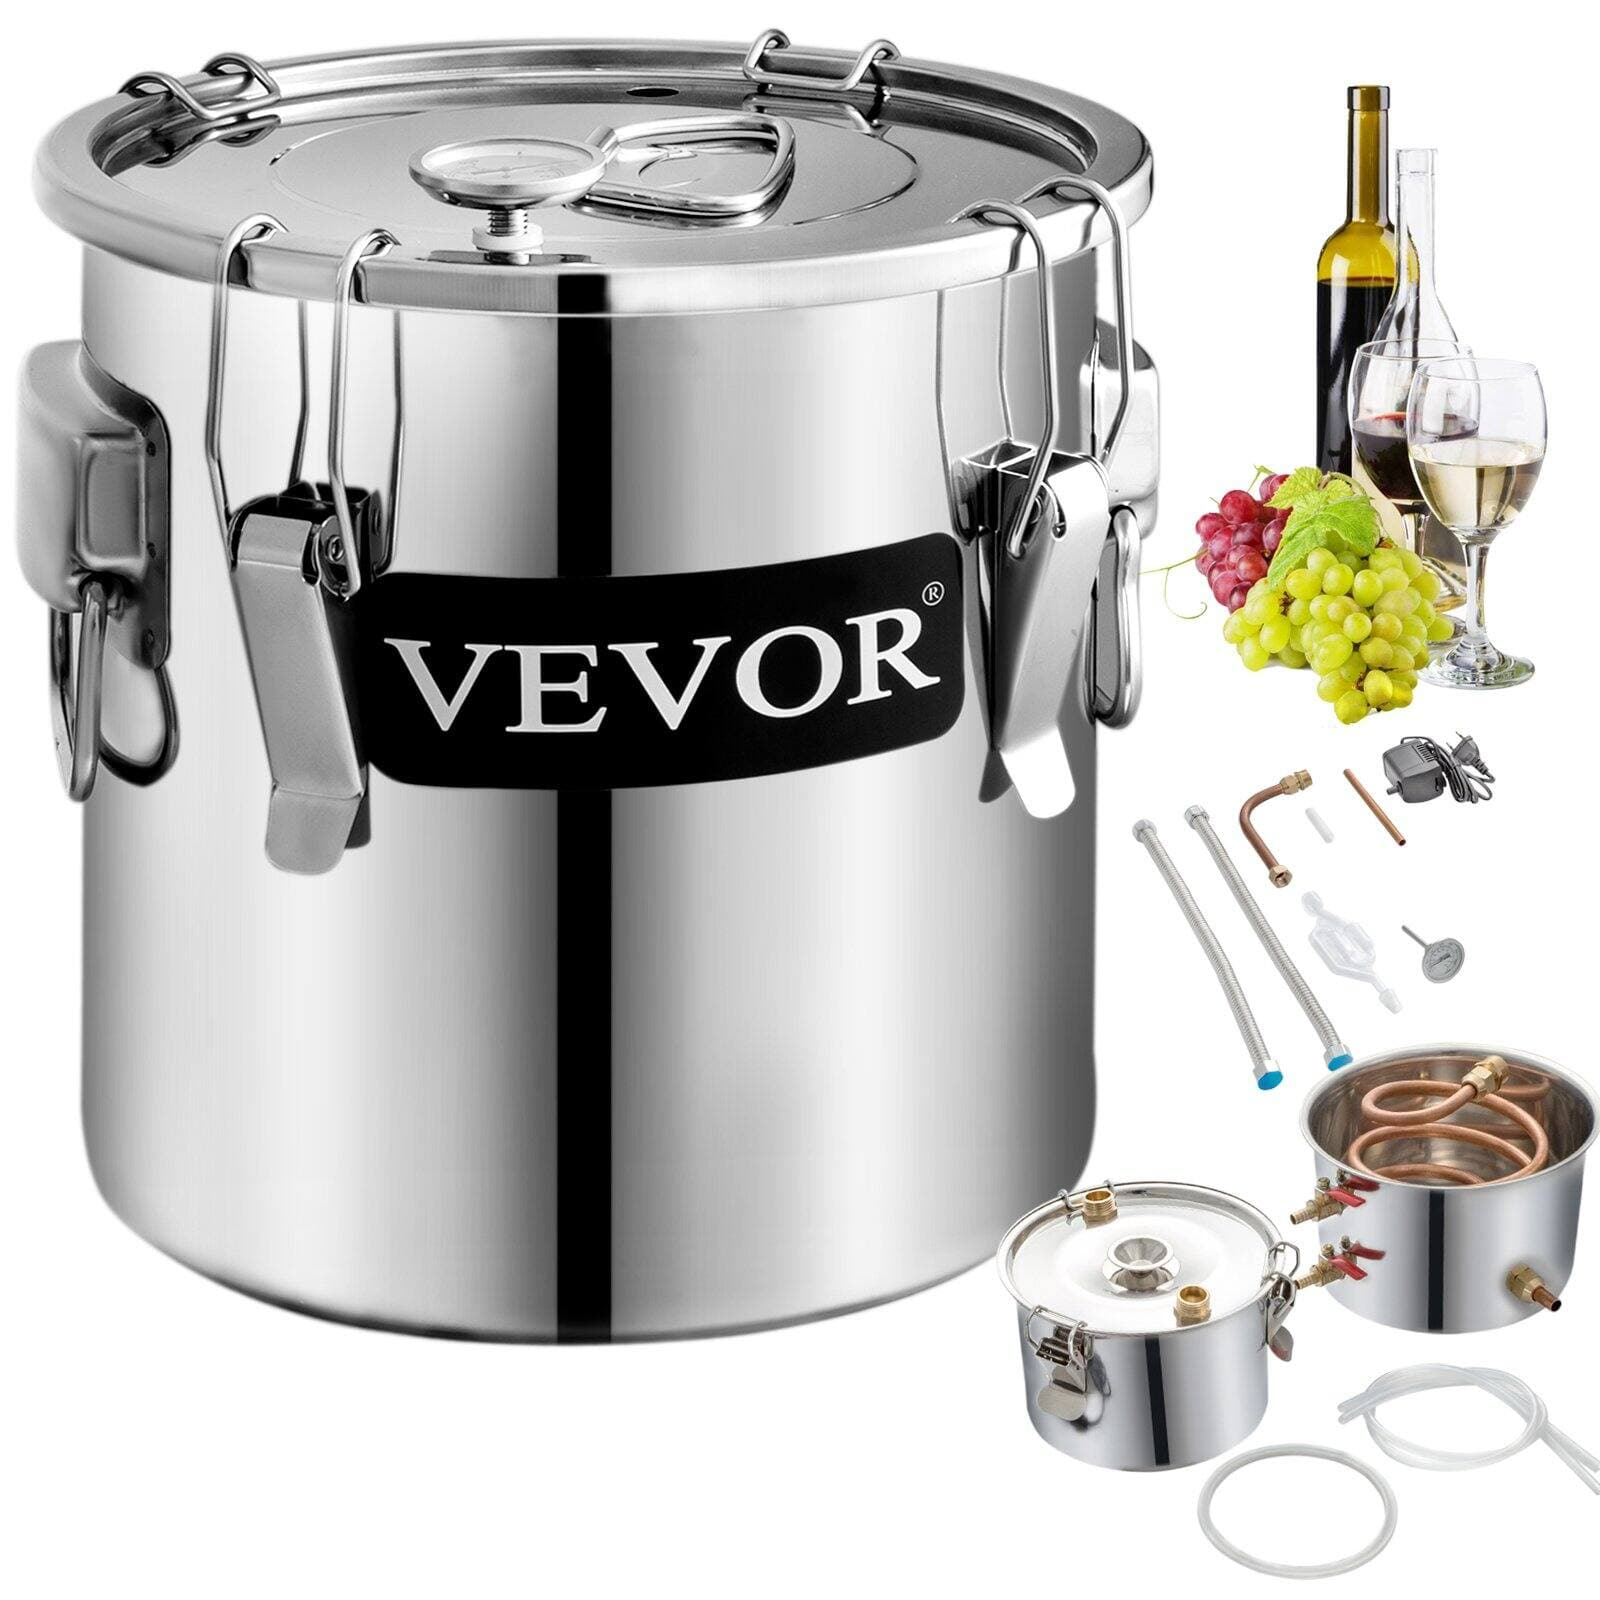 VEVOR 3 Pot 3 Gallon Stainless Still Boiler (Water ,Wine, Moonshine) 79.90  + Free Shipping